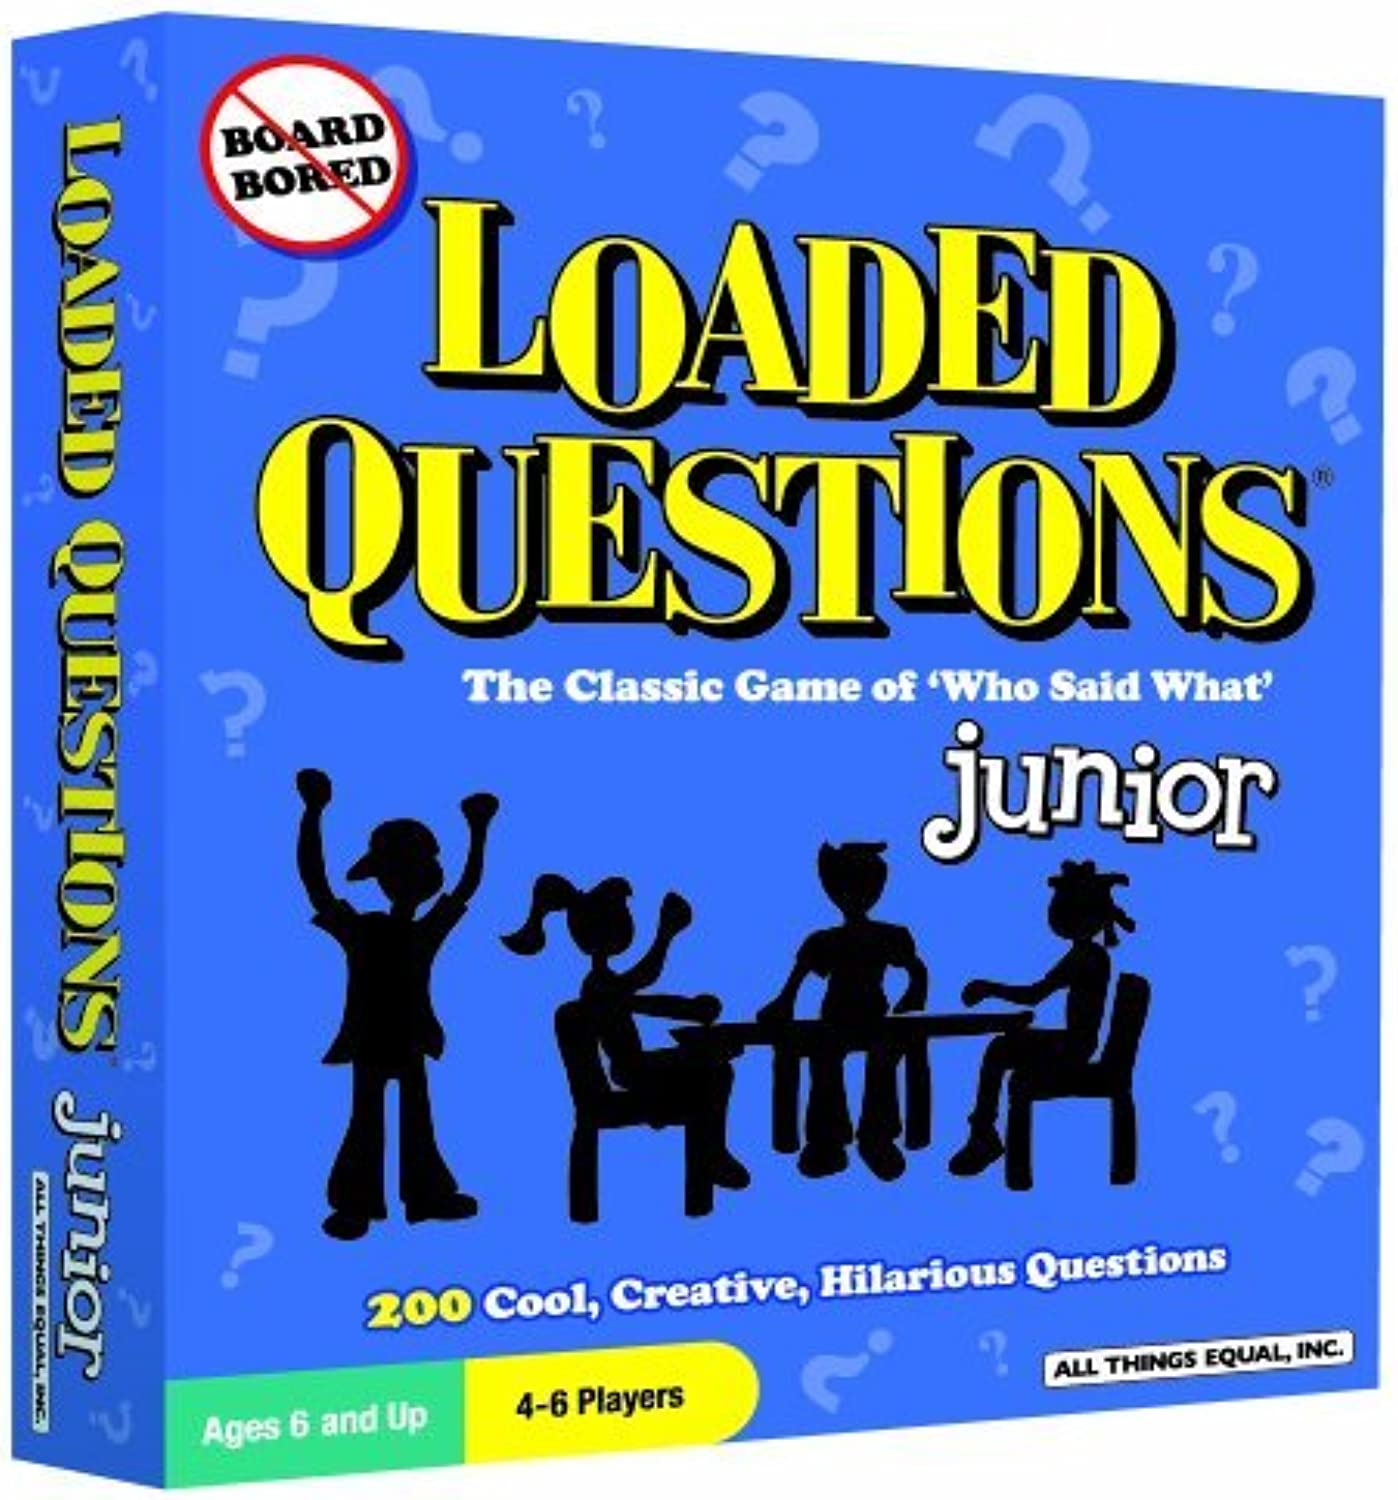 Loaded Questions  Junior by All Things Equal, Inc.